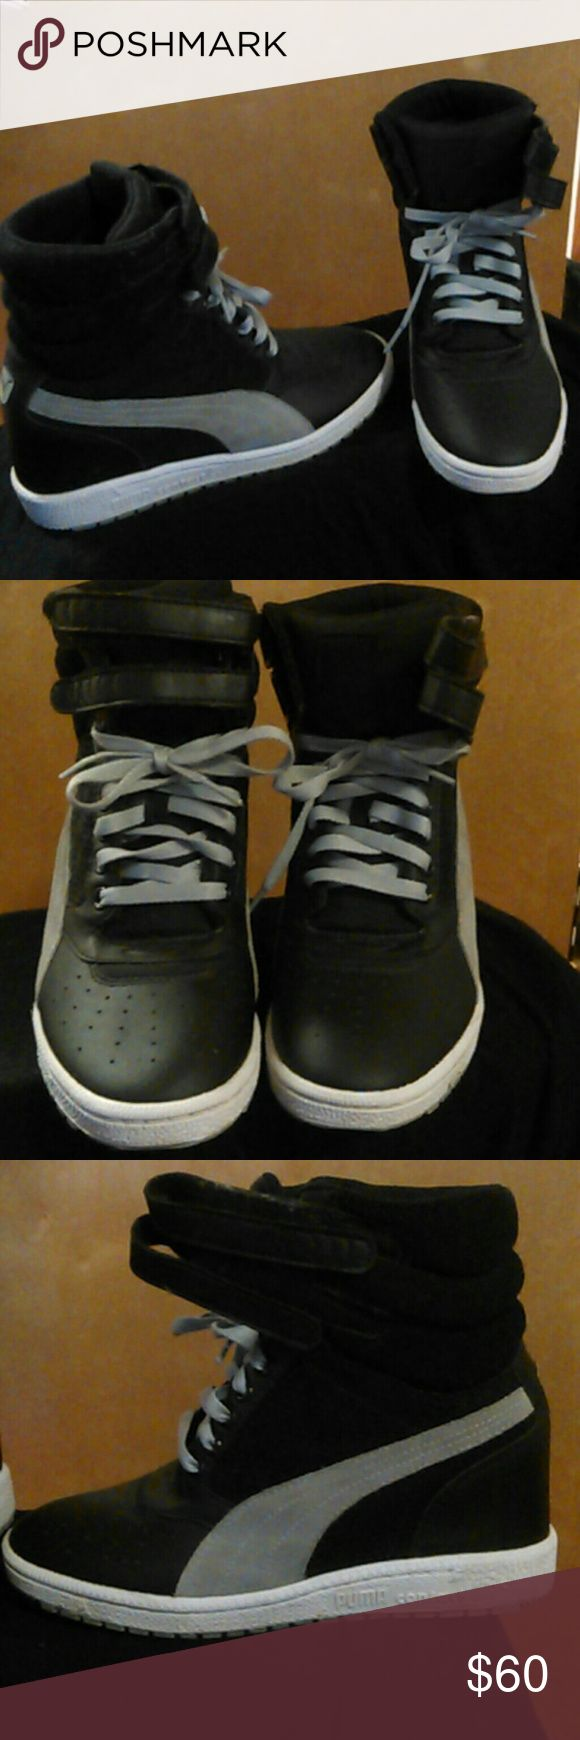 Puma leather and suede high top wedge sneakers Black and grey leather and suede high top Puma wedges. Normal wear and in good condition. No scratches or scuffs in the leather. Puma Shoes